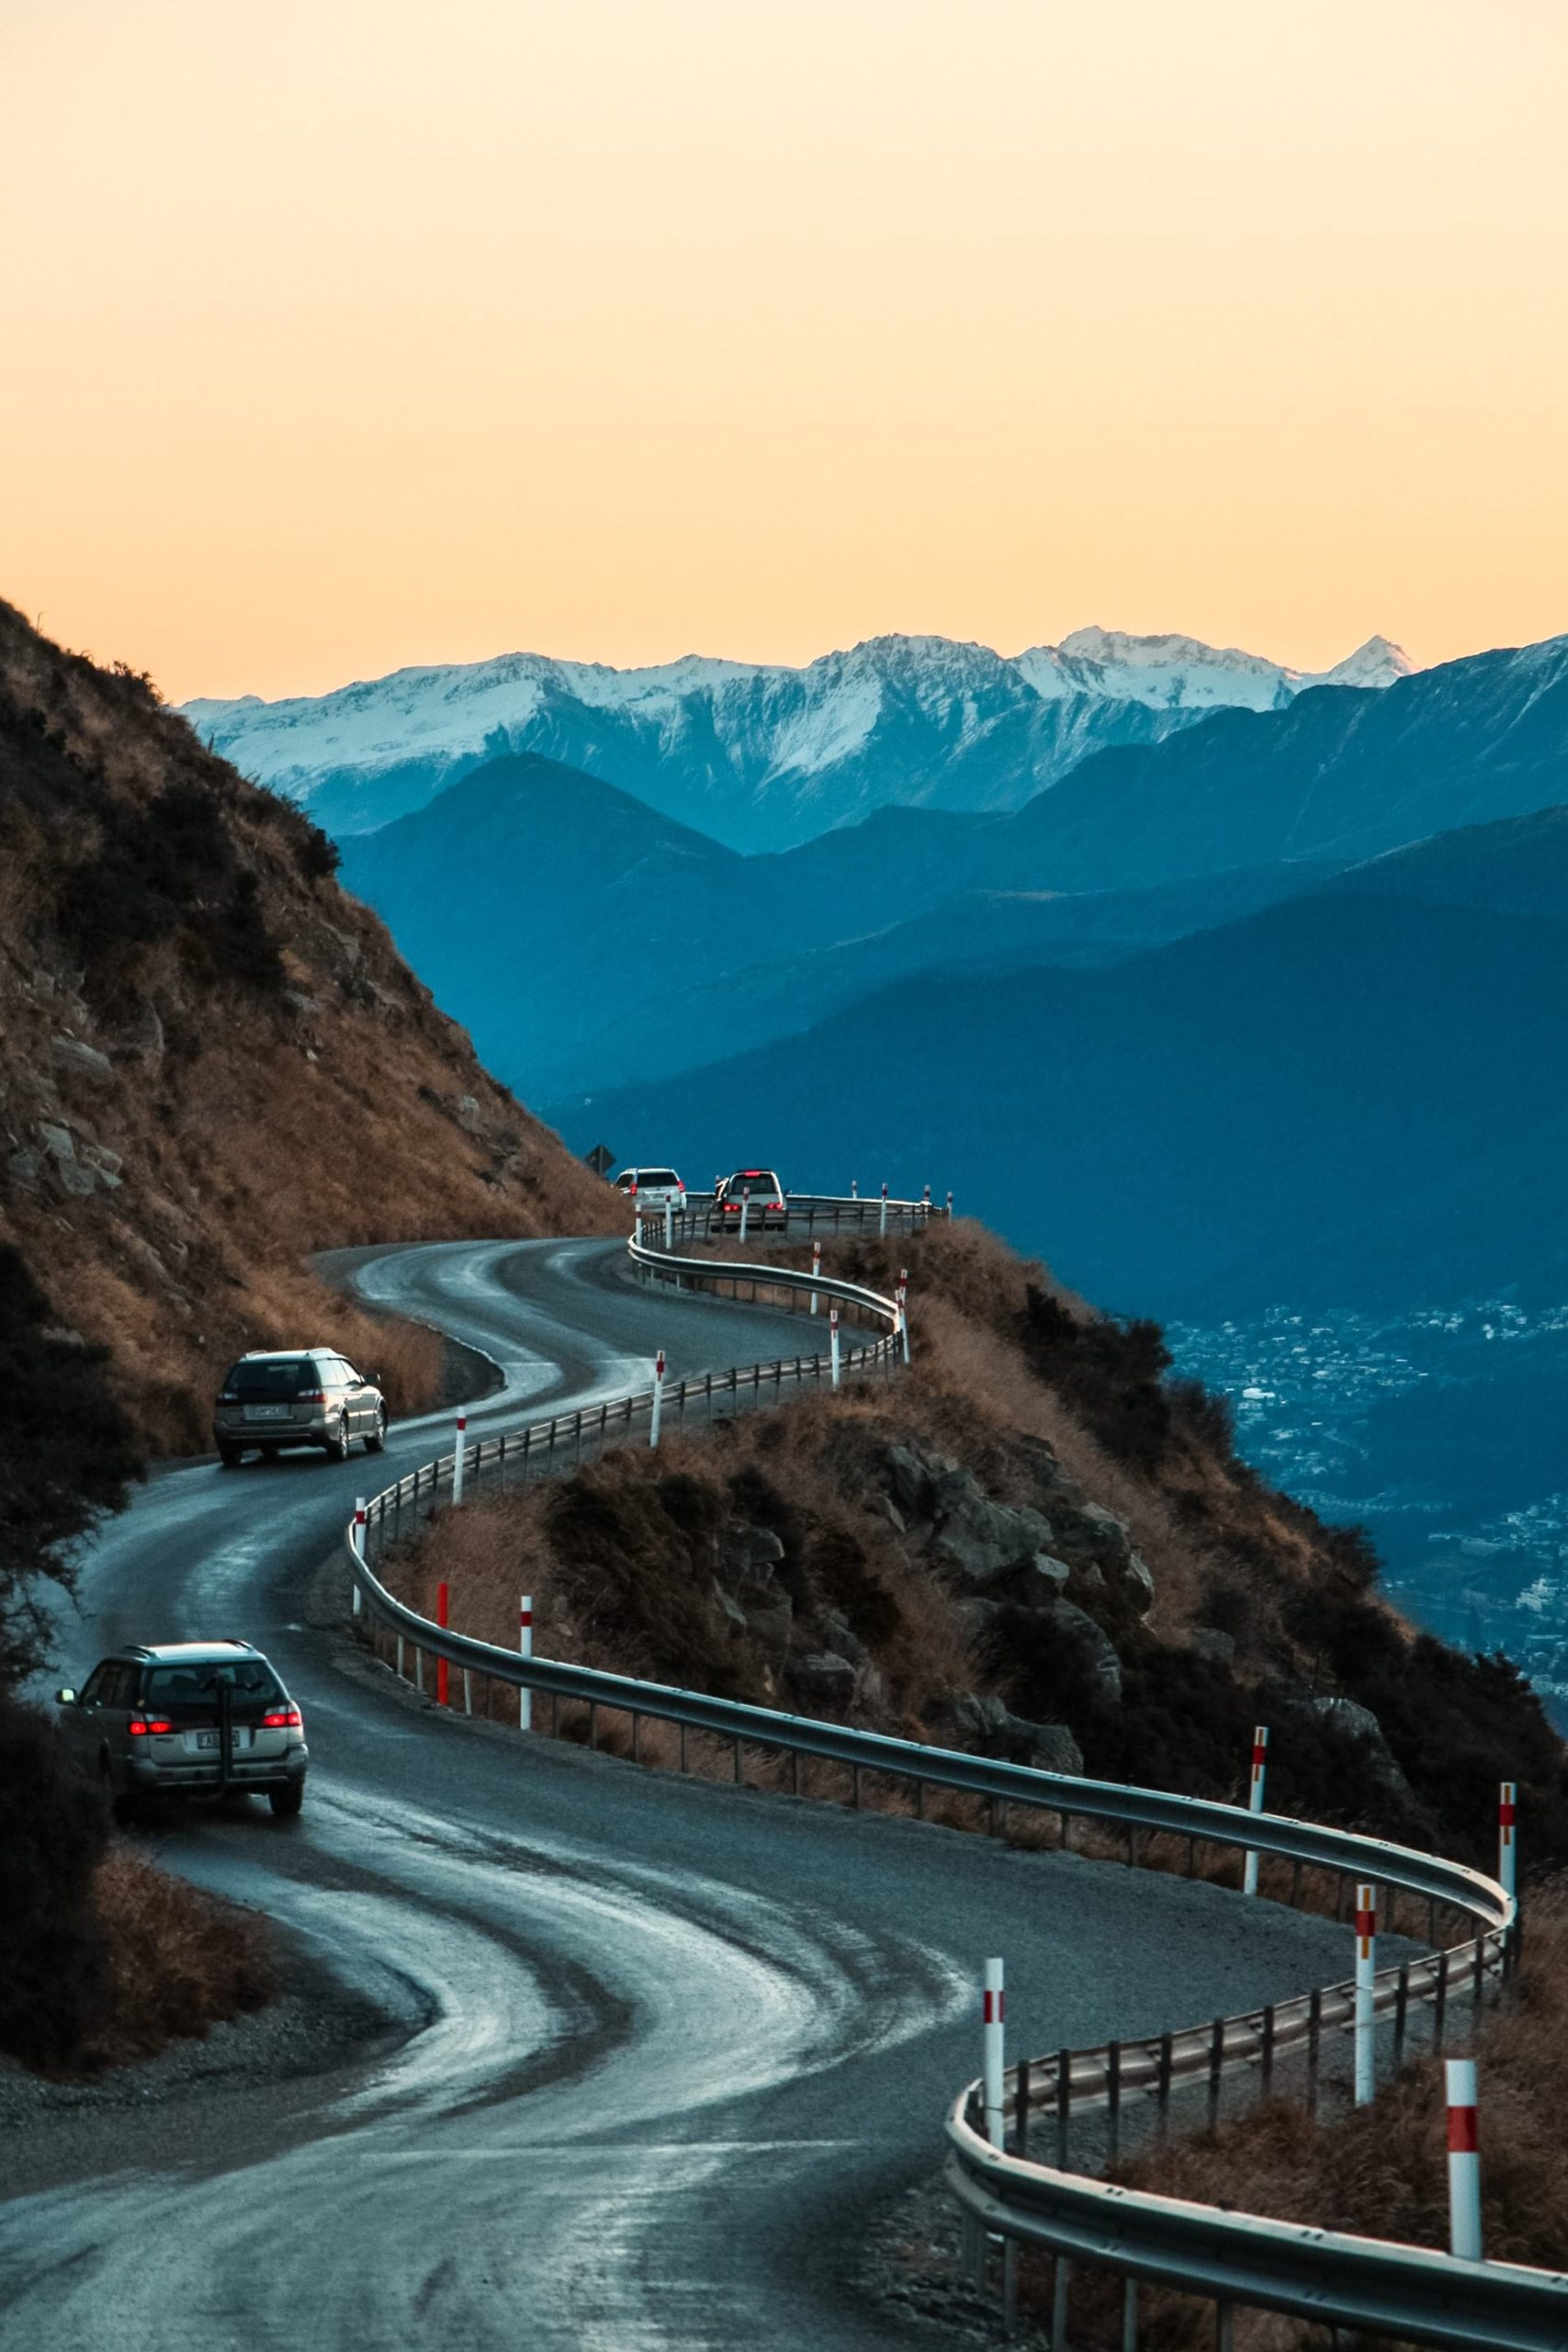 A scenic drive near Queenstown in New Zealand's South Island.